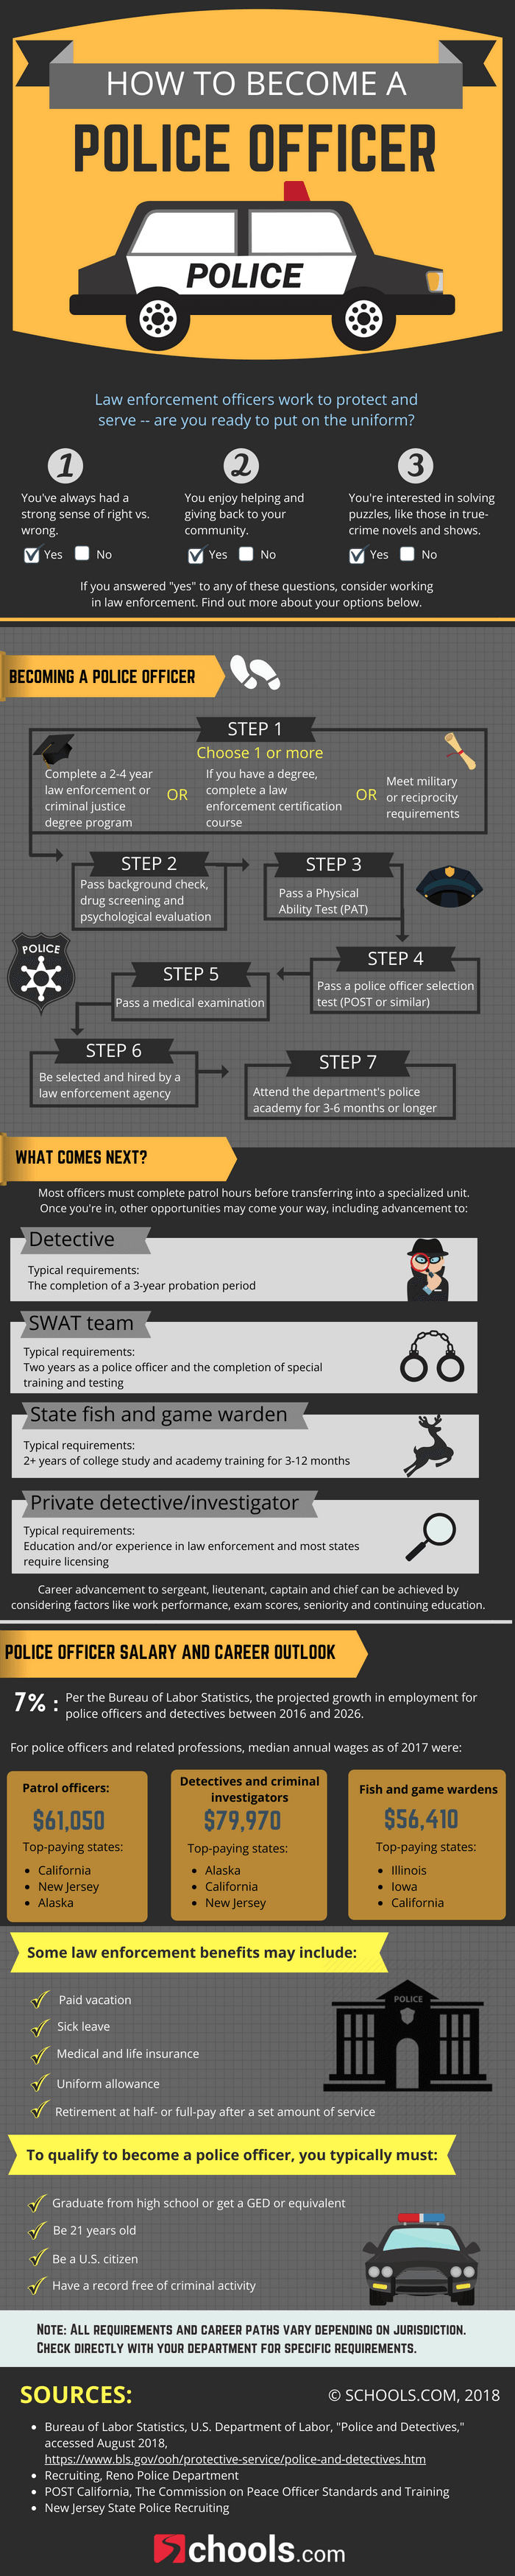 Want to Become a Police Officer? Follow These 7 Steps - Infographic